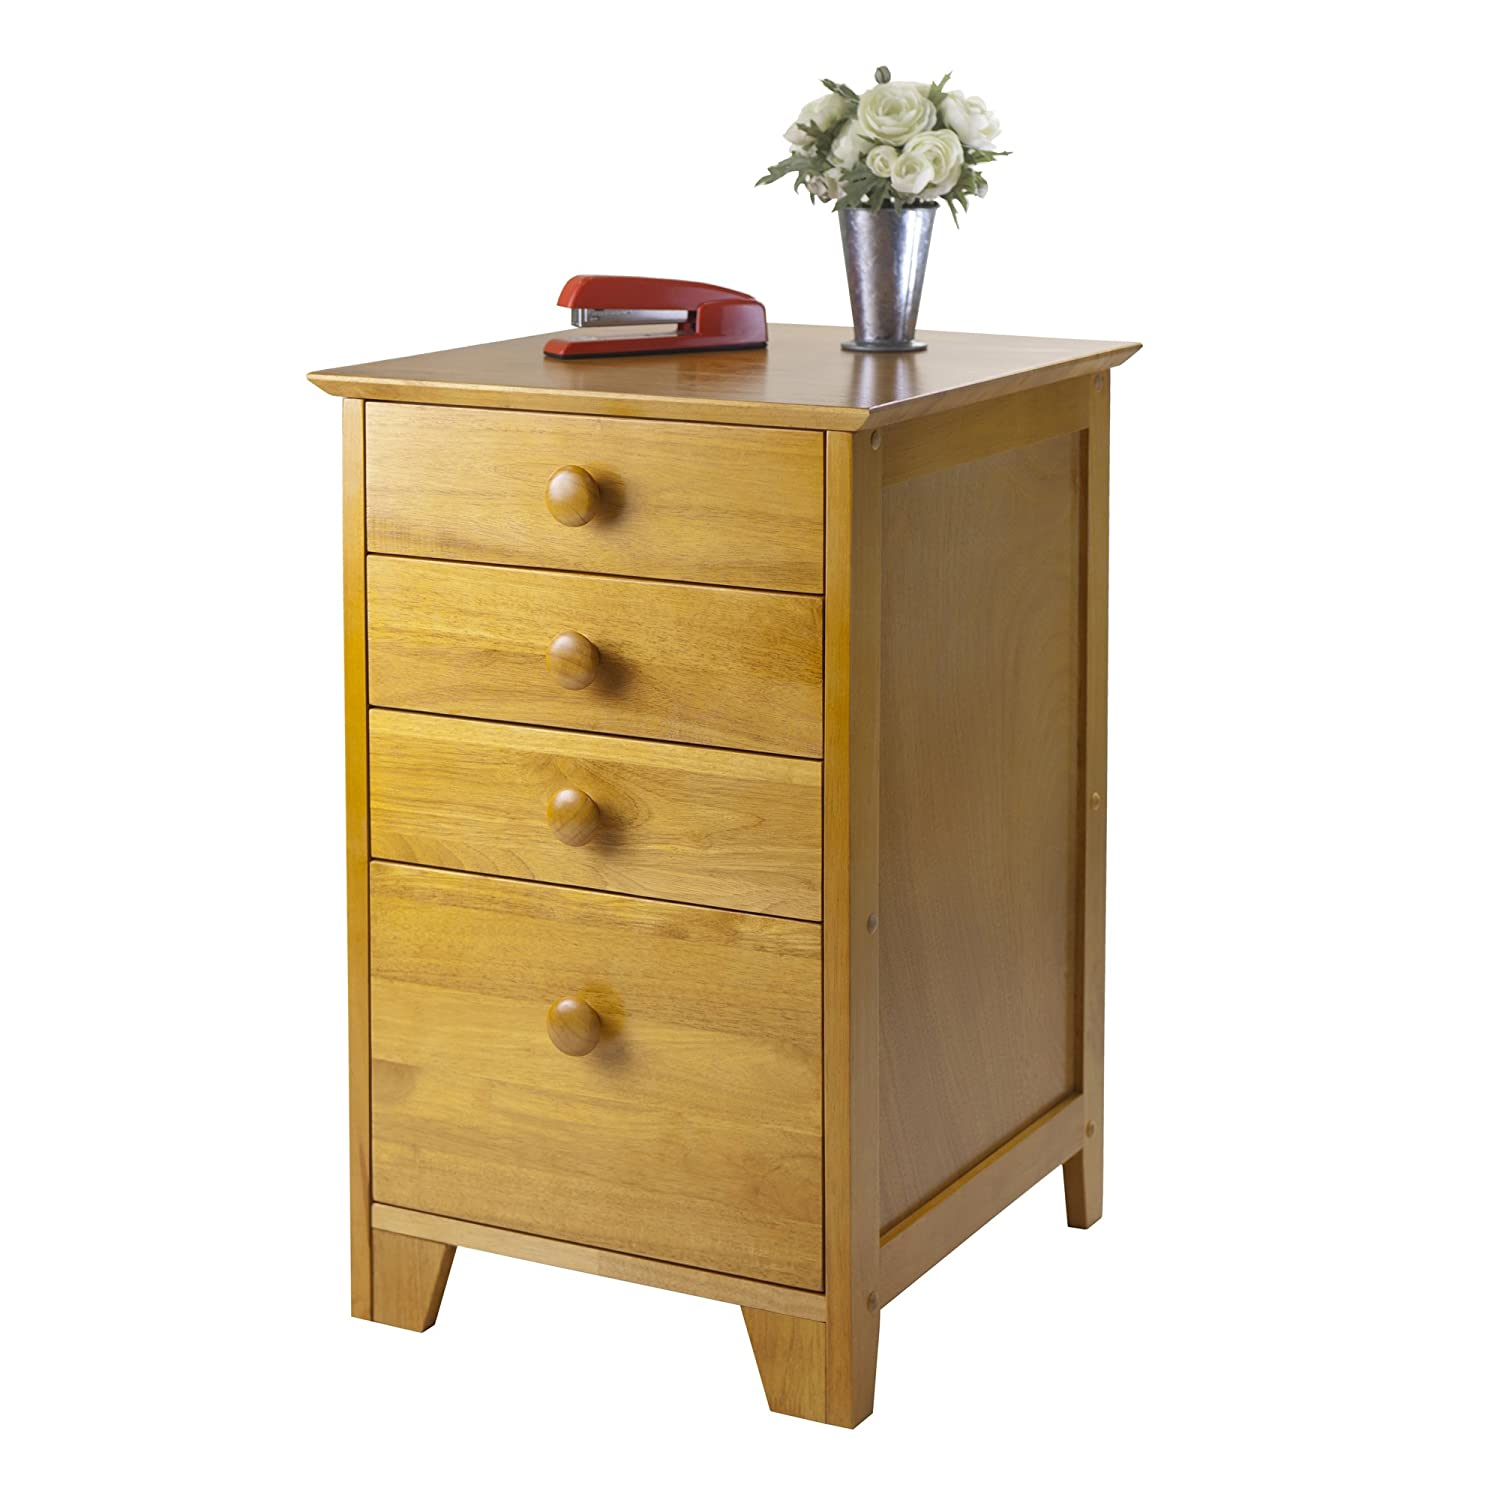 amazoncom honey pine filing cabinet extra storage drawers kitchen u0026 dining - Small Filing Cabinet